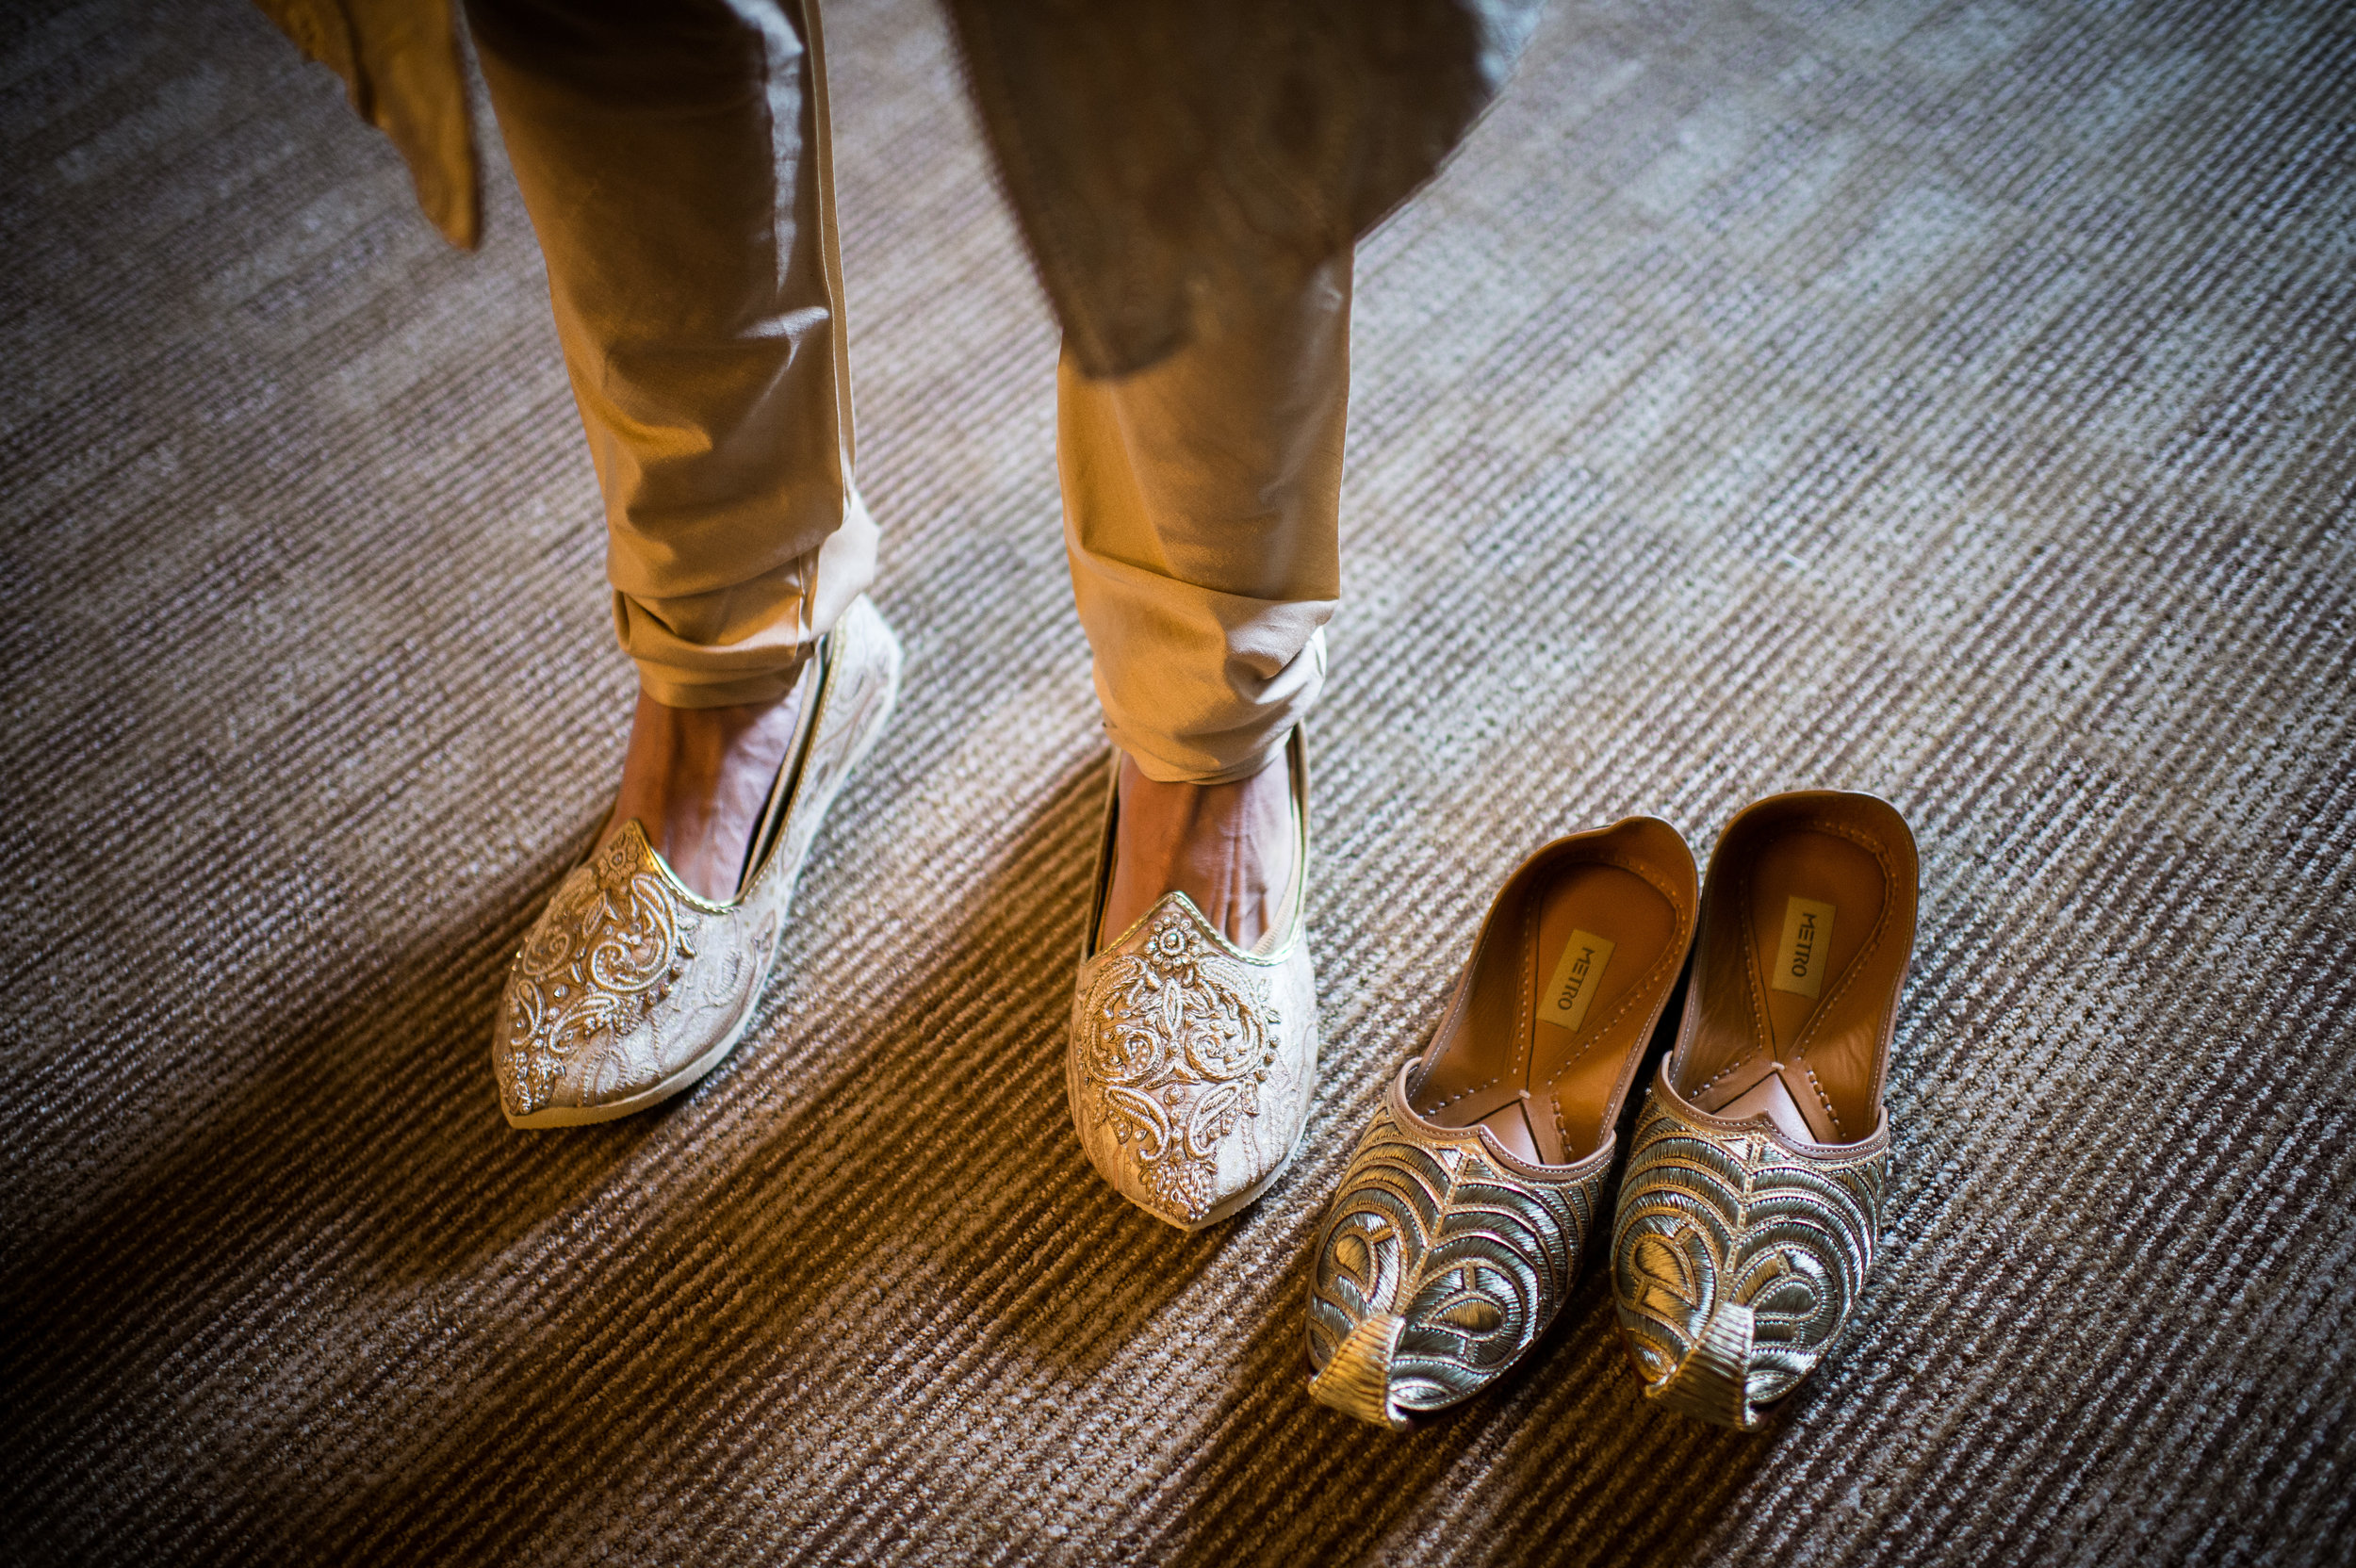 Indian groom putting on Shoes.JPG